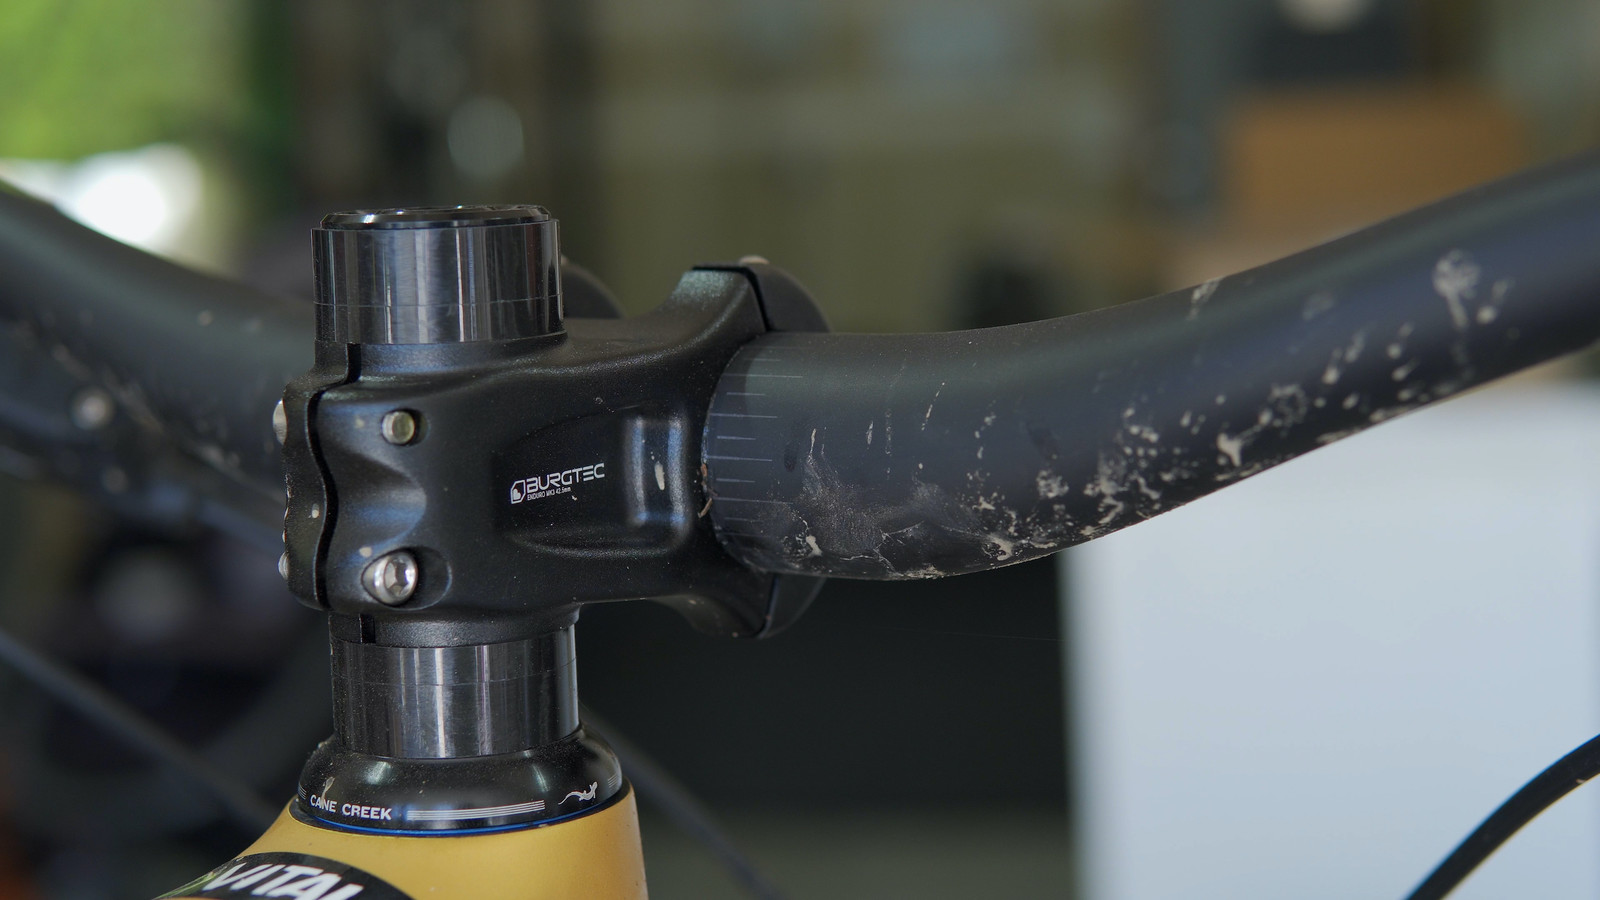 We have since lowered the stem by 5mm and it feels much better.